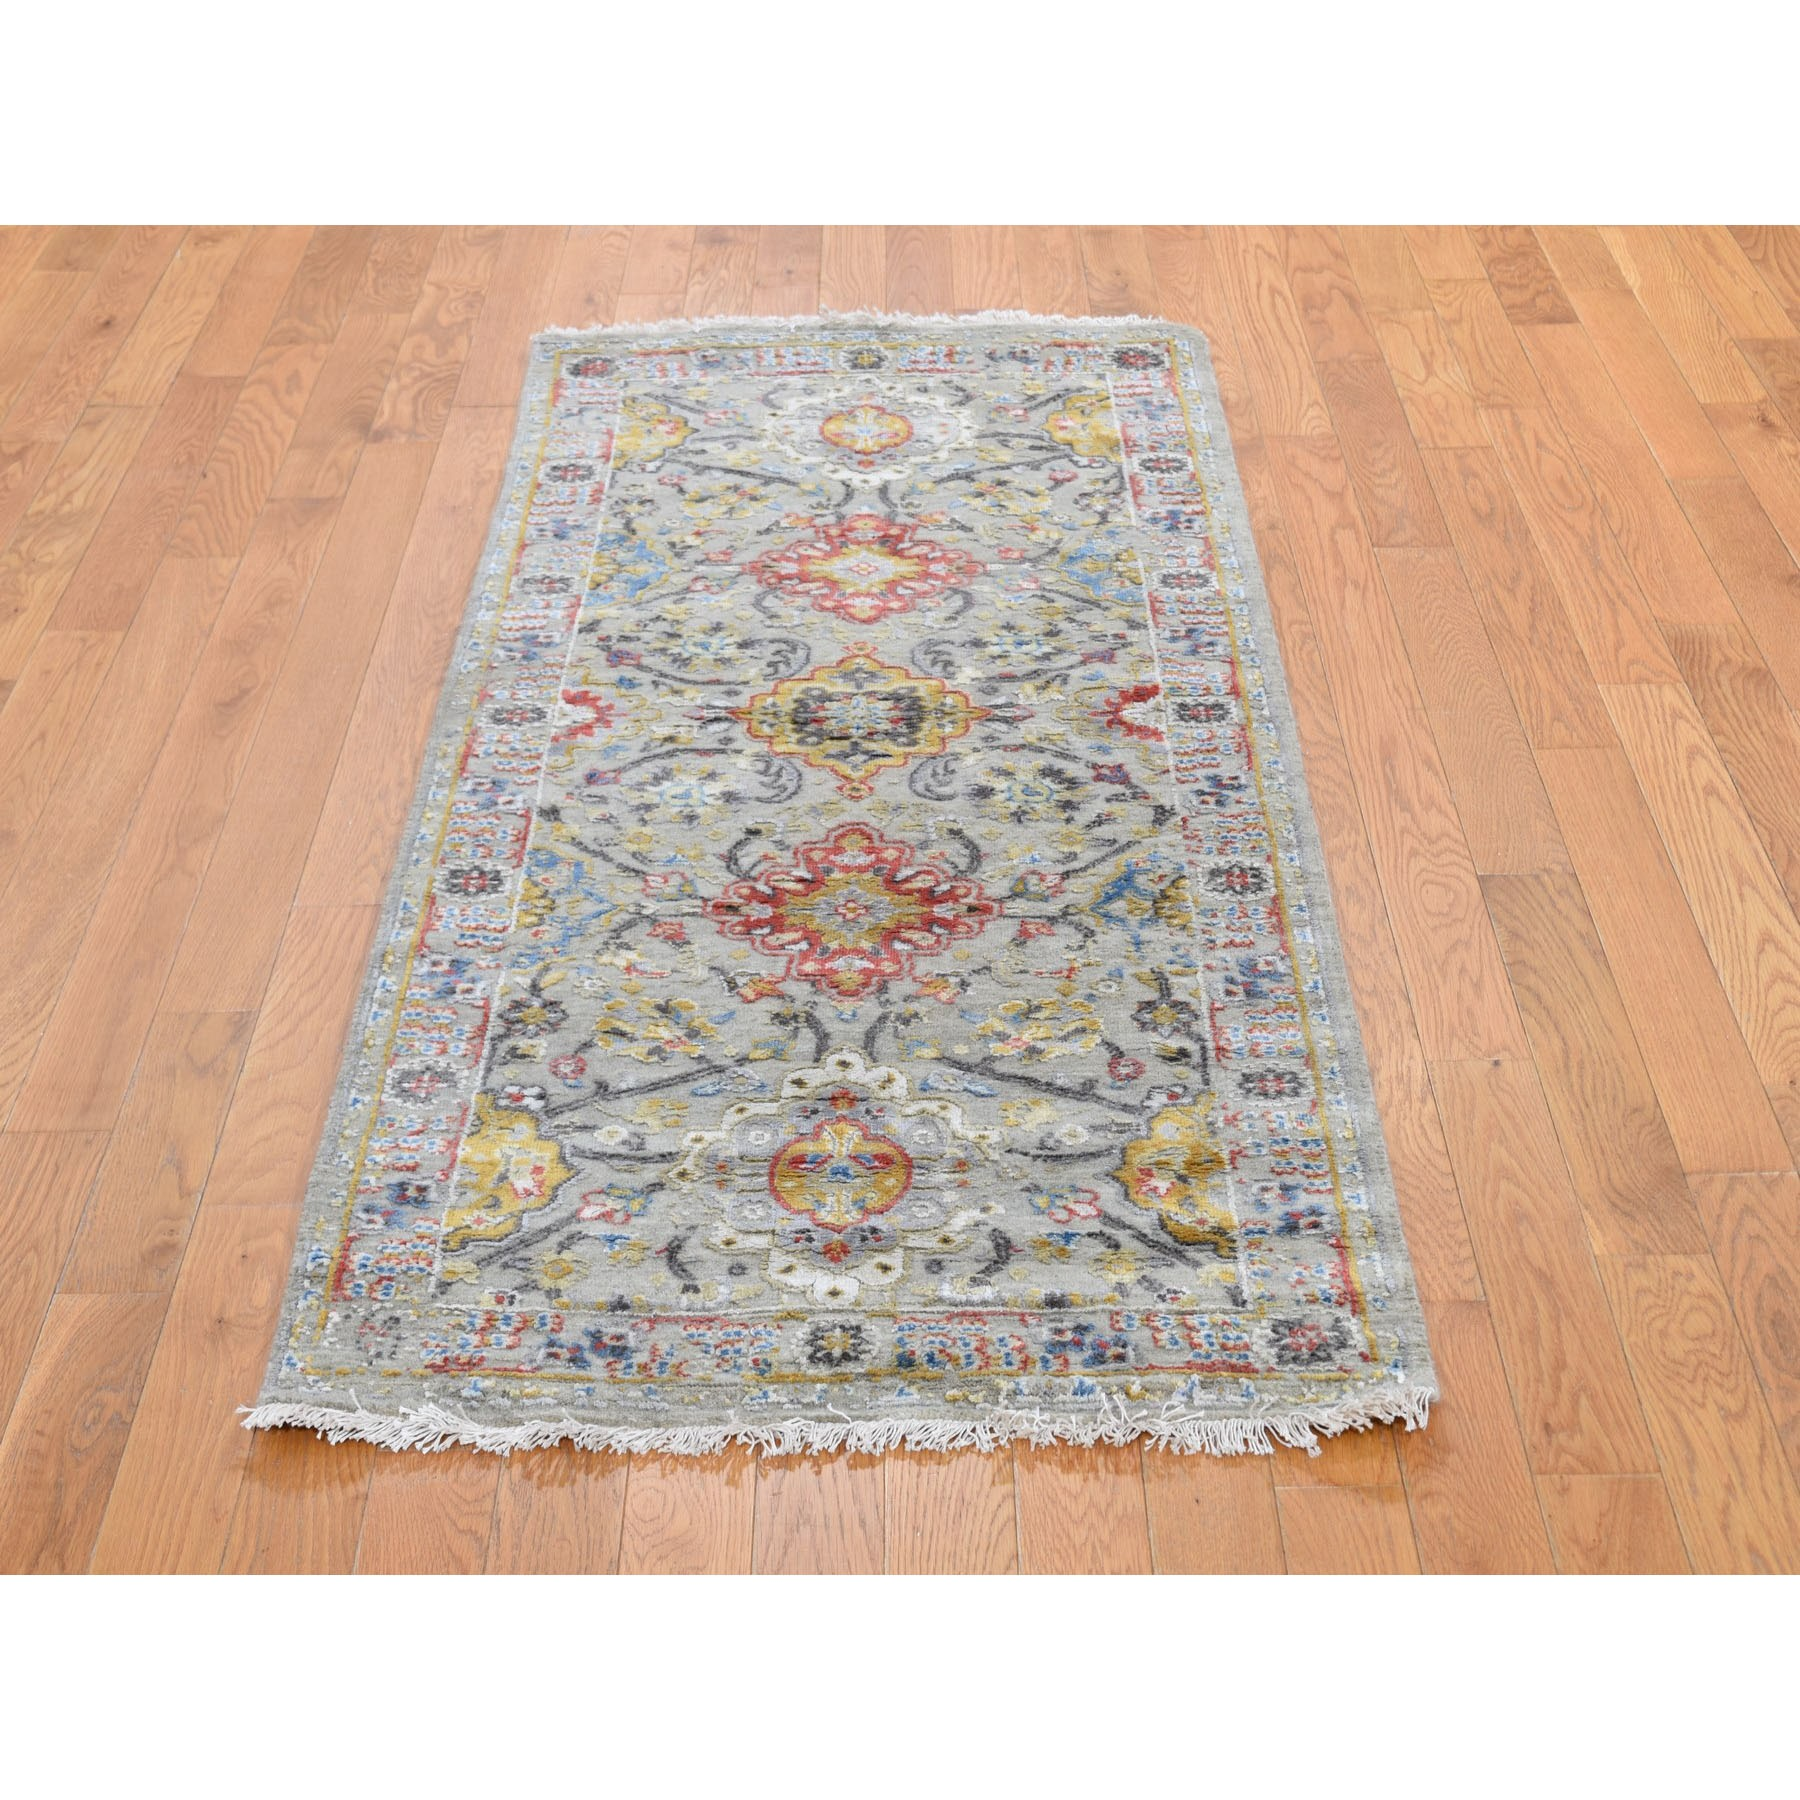 "2'7""x6' THE SUNSET ROSETTES Wool And Pure Silk Runner Hand Knotted Oriental Rug"